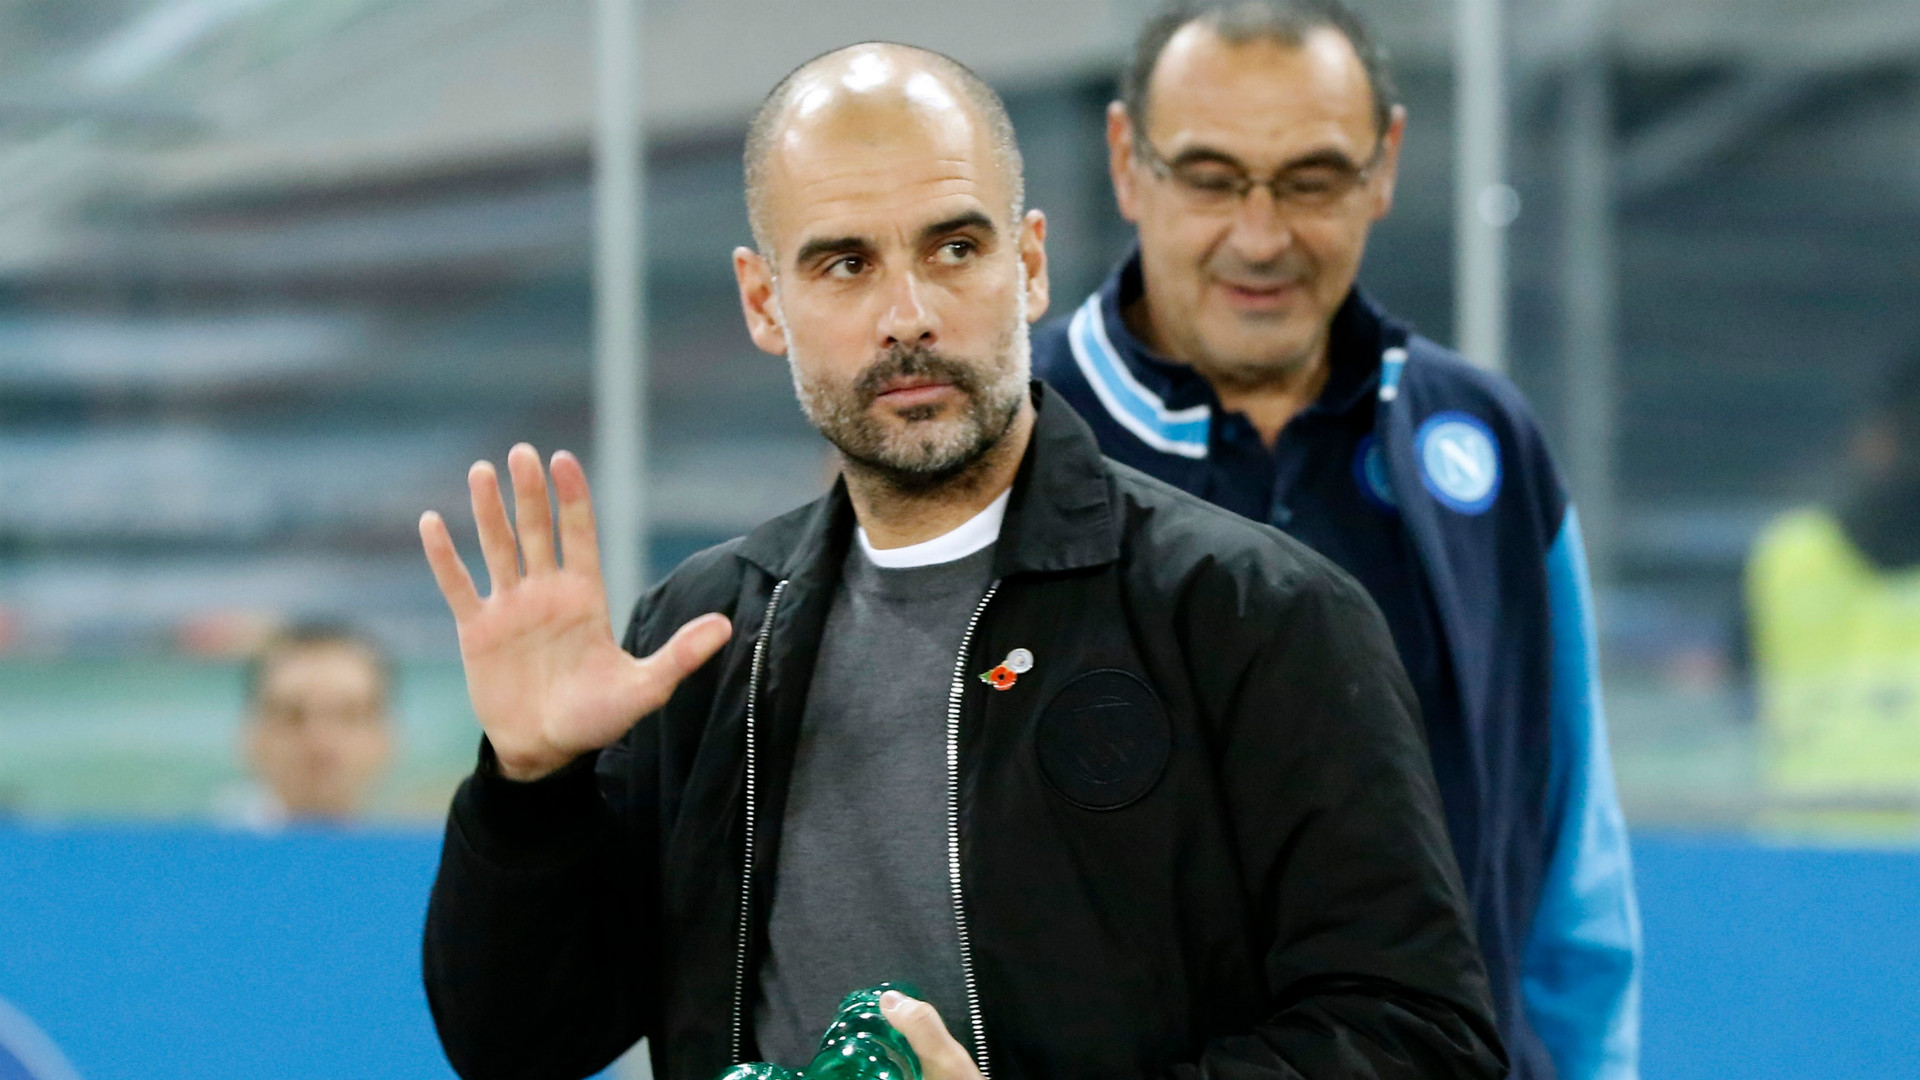 Video: Man City had 'to suffer' during Napoli win - Guardiola